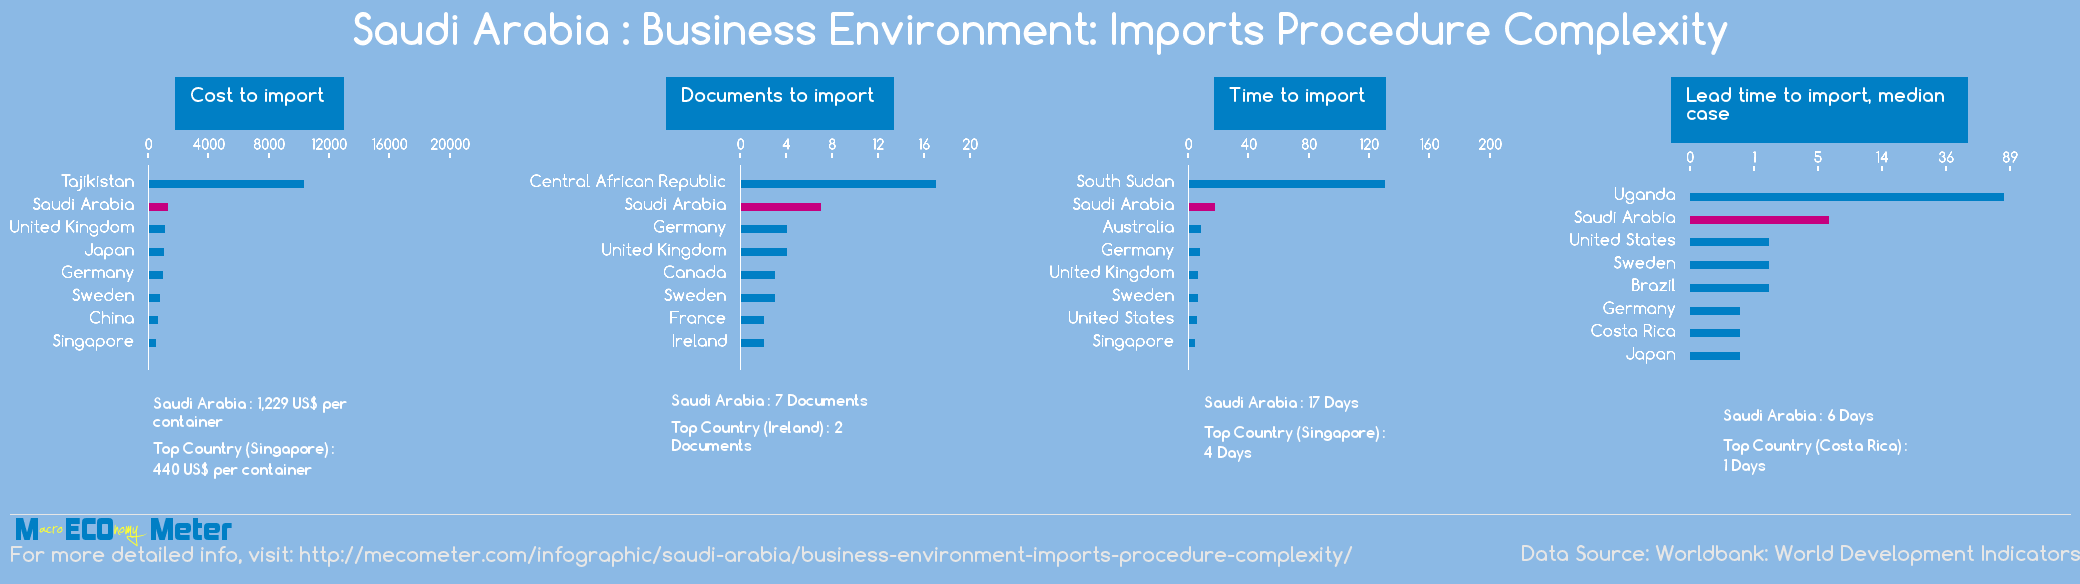 Saudi Arabia : Business Environment: Imports Procedure Complexity